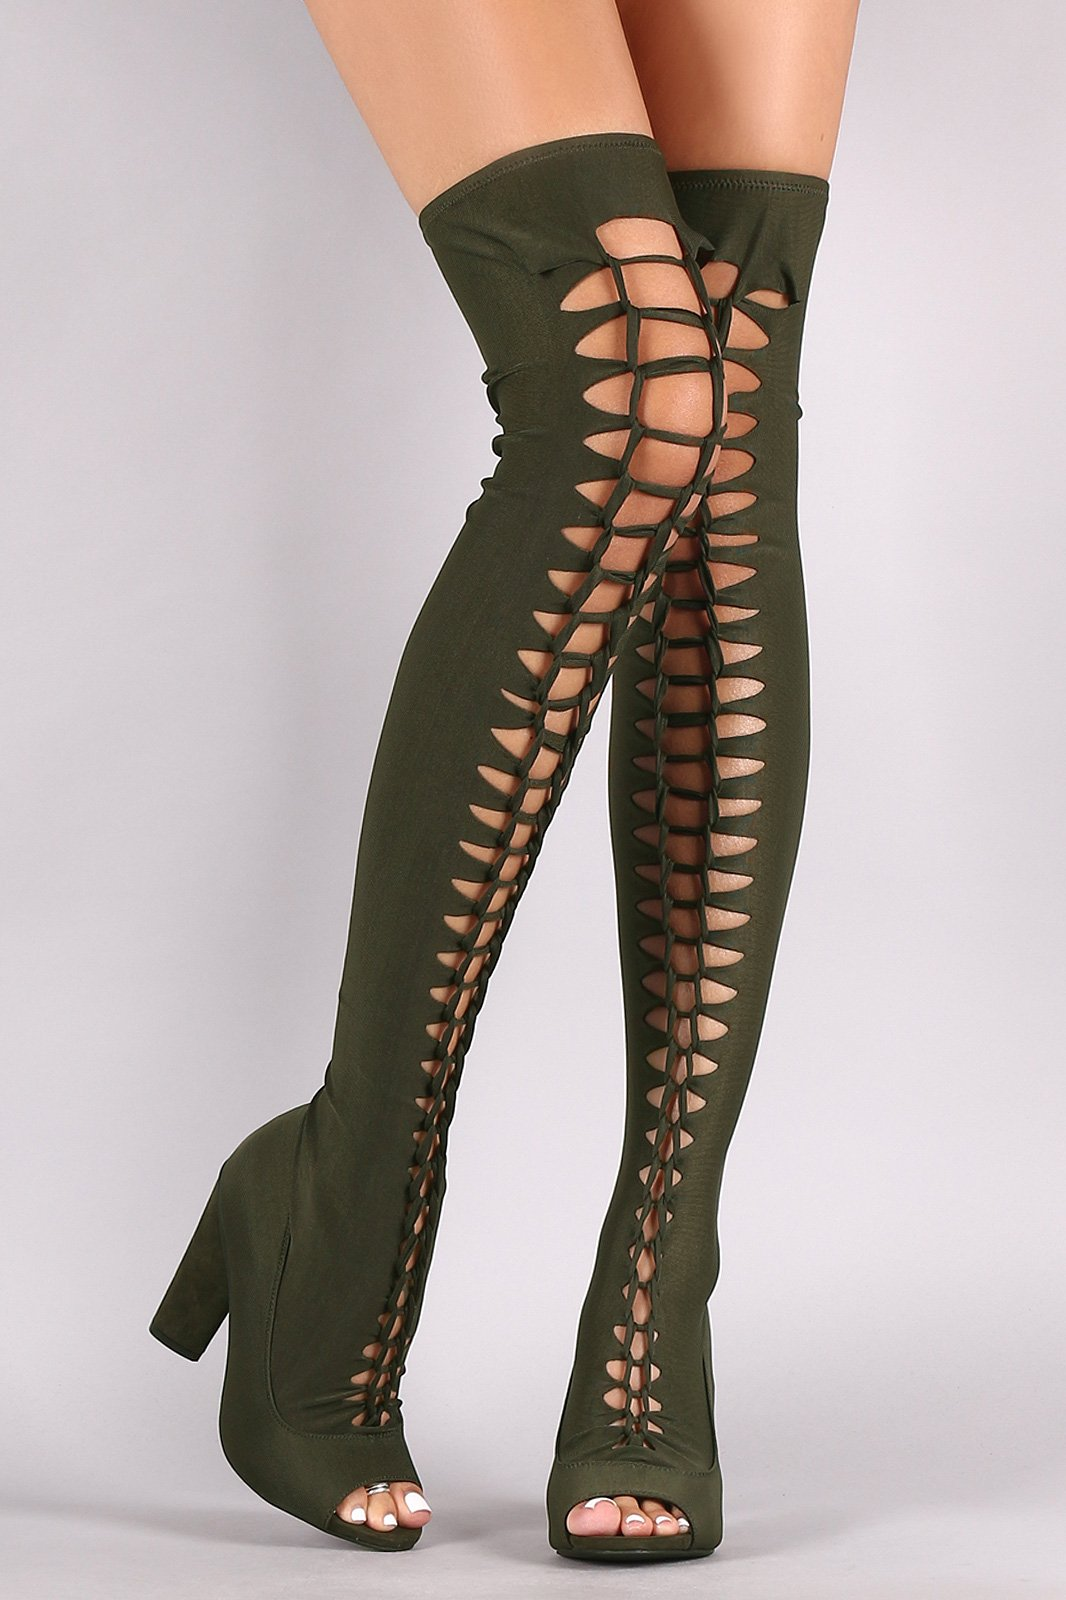 f167ff579a4 Topaze Fashion: Boots Collection | Milled